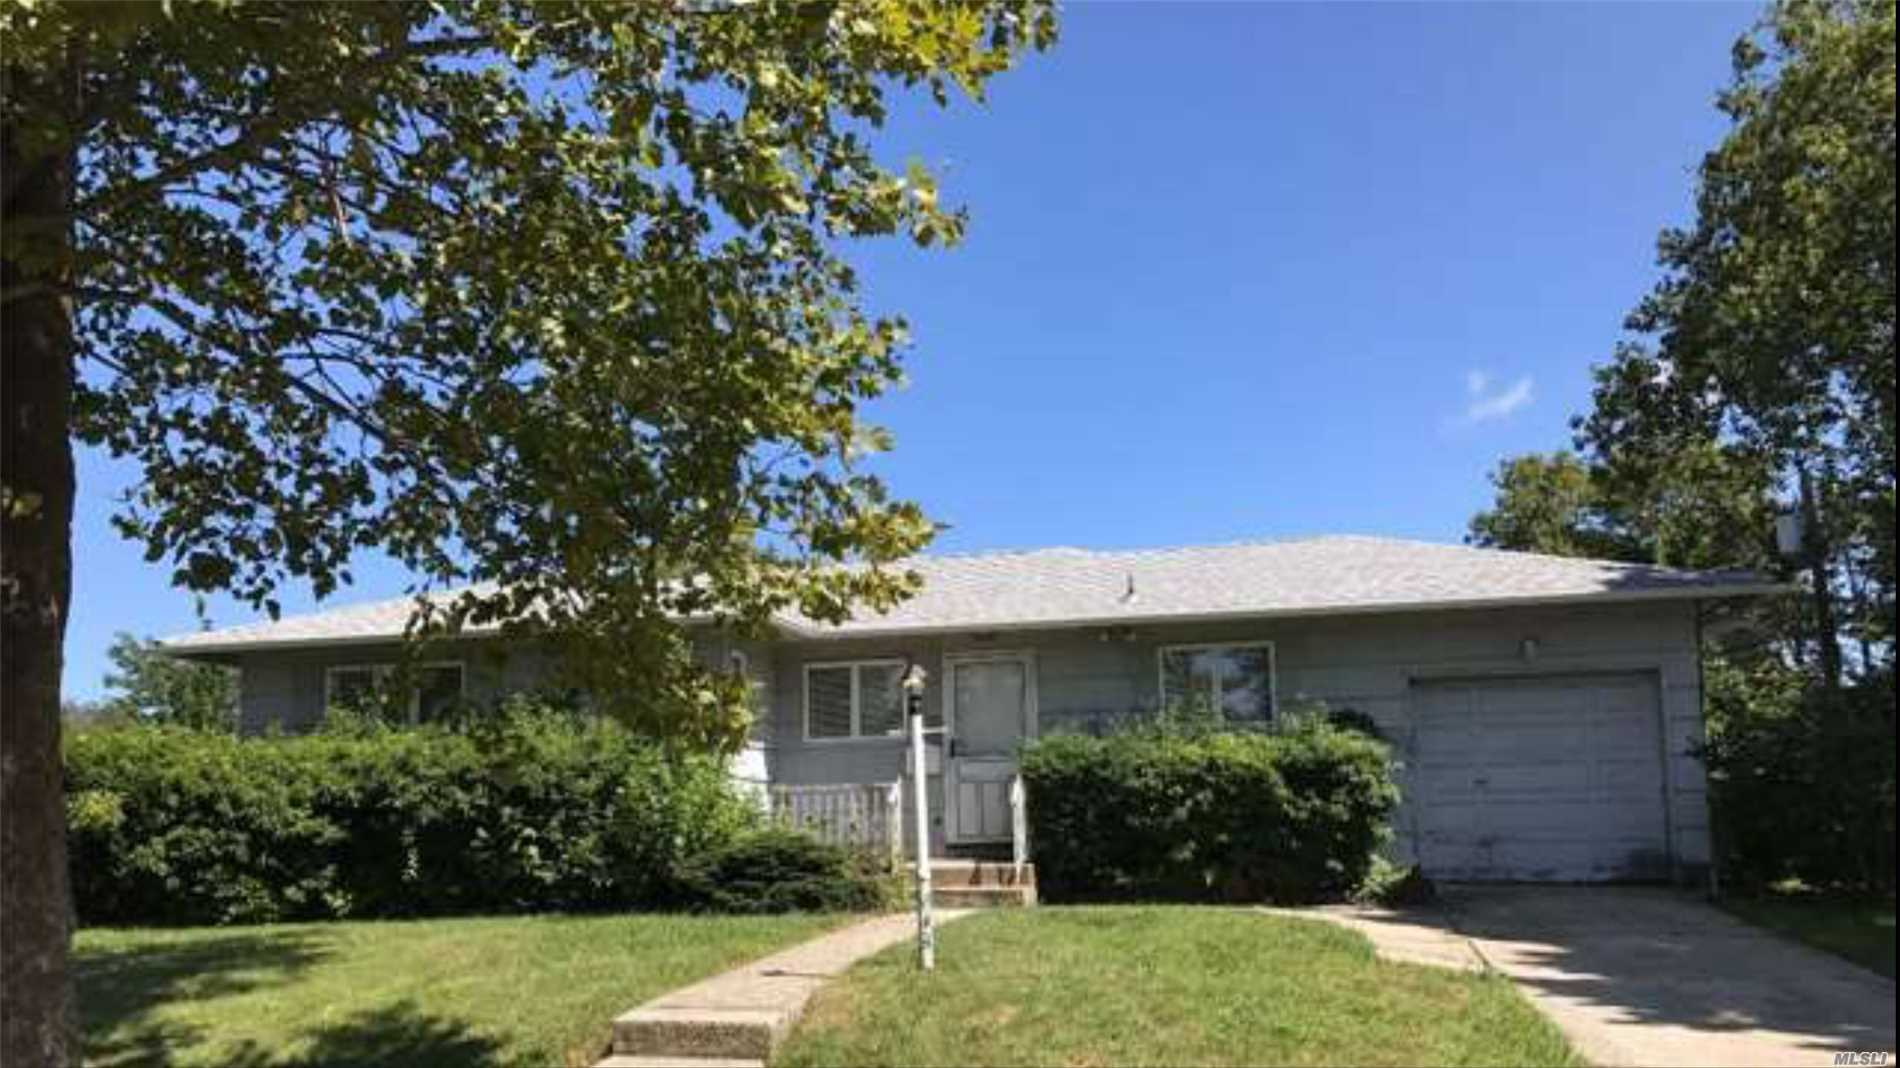 New Kitchen Gas Cooking. 3 Beds 2 Baths Full Basement. Garage With Seperate Entrenches. Close To All.